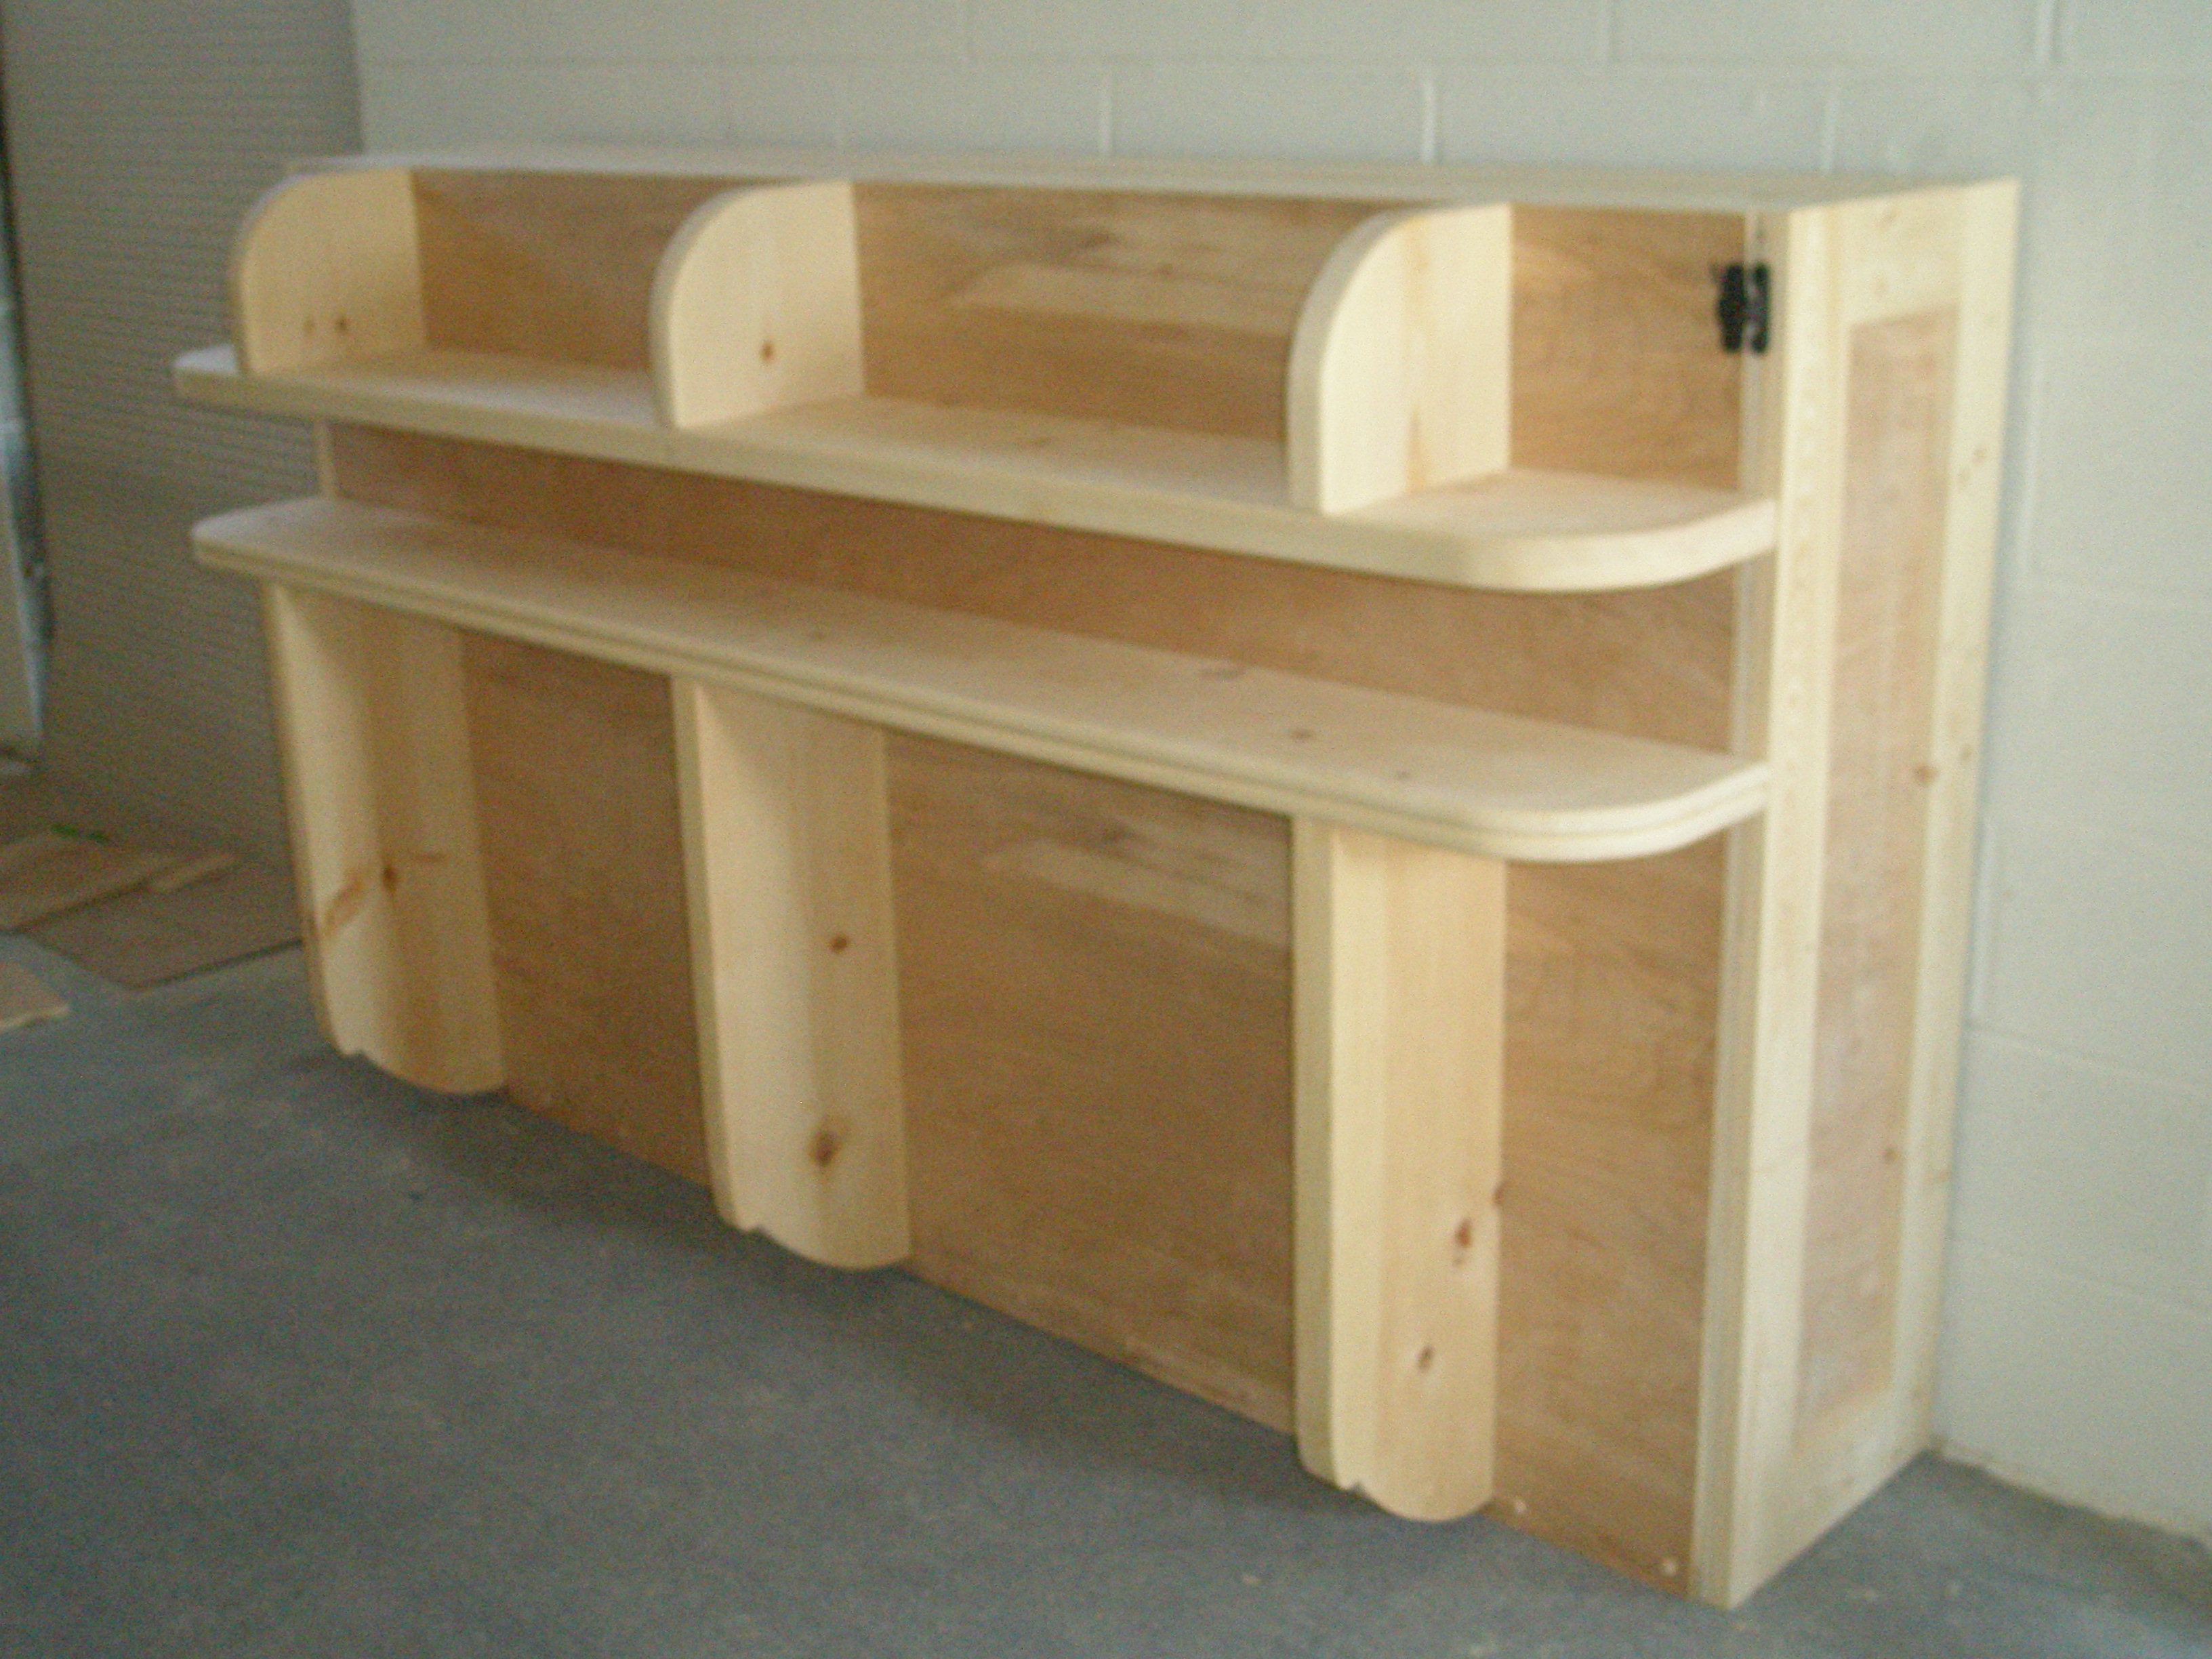 Diy Horizontal Murphy Bed Plans Pdf Woodworking